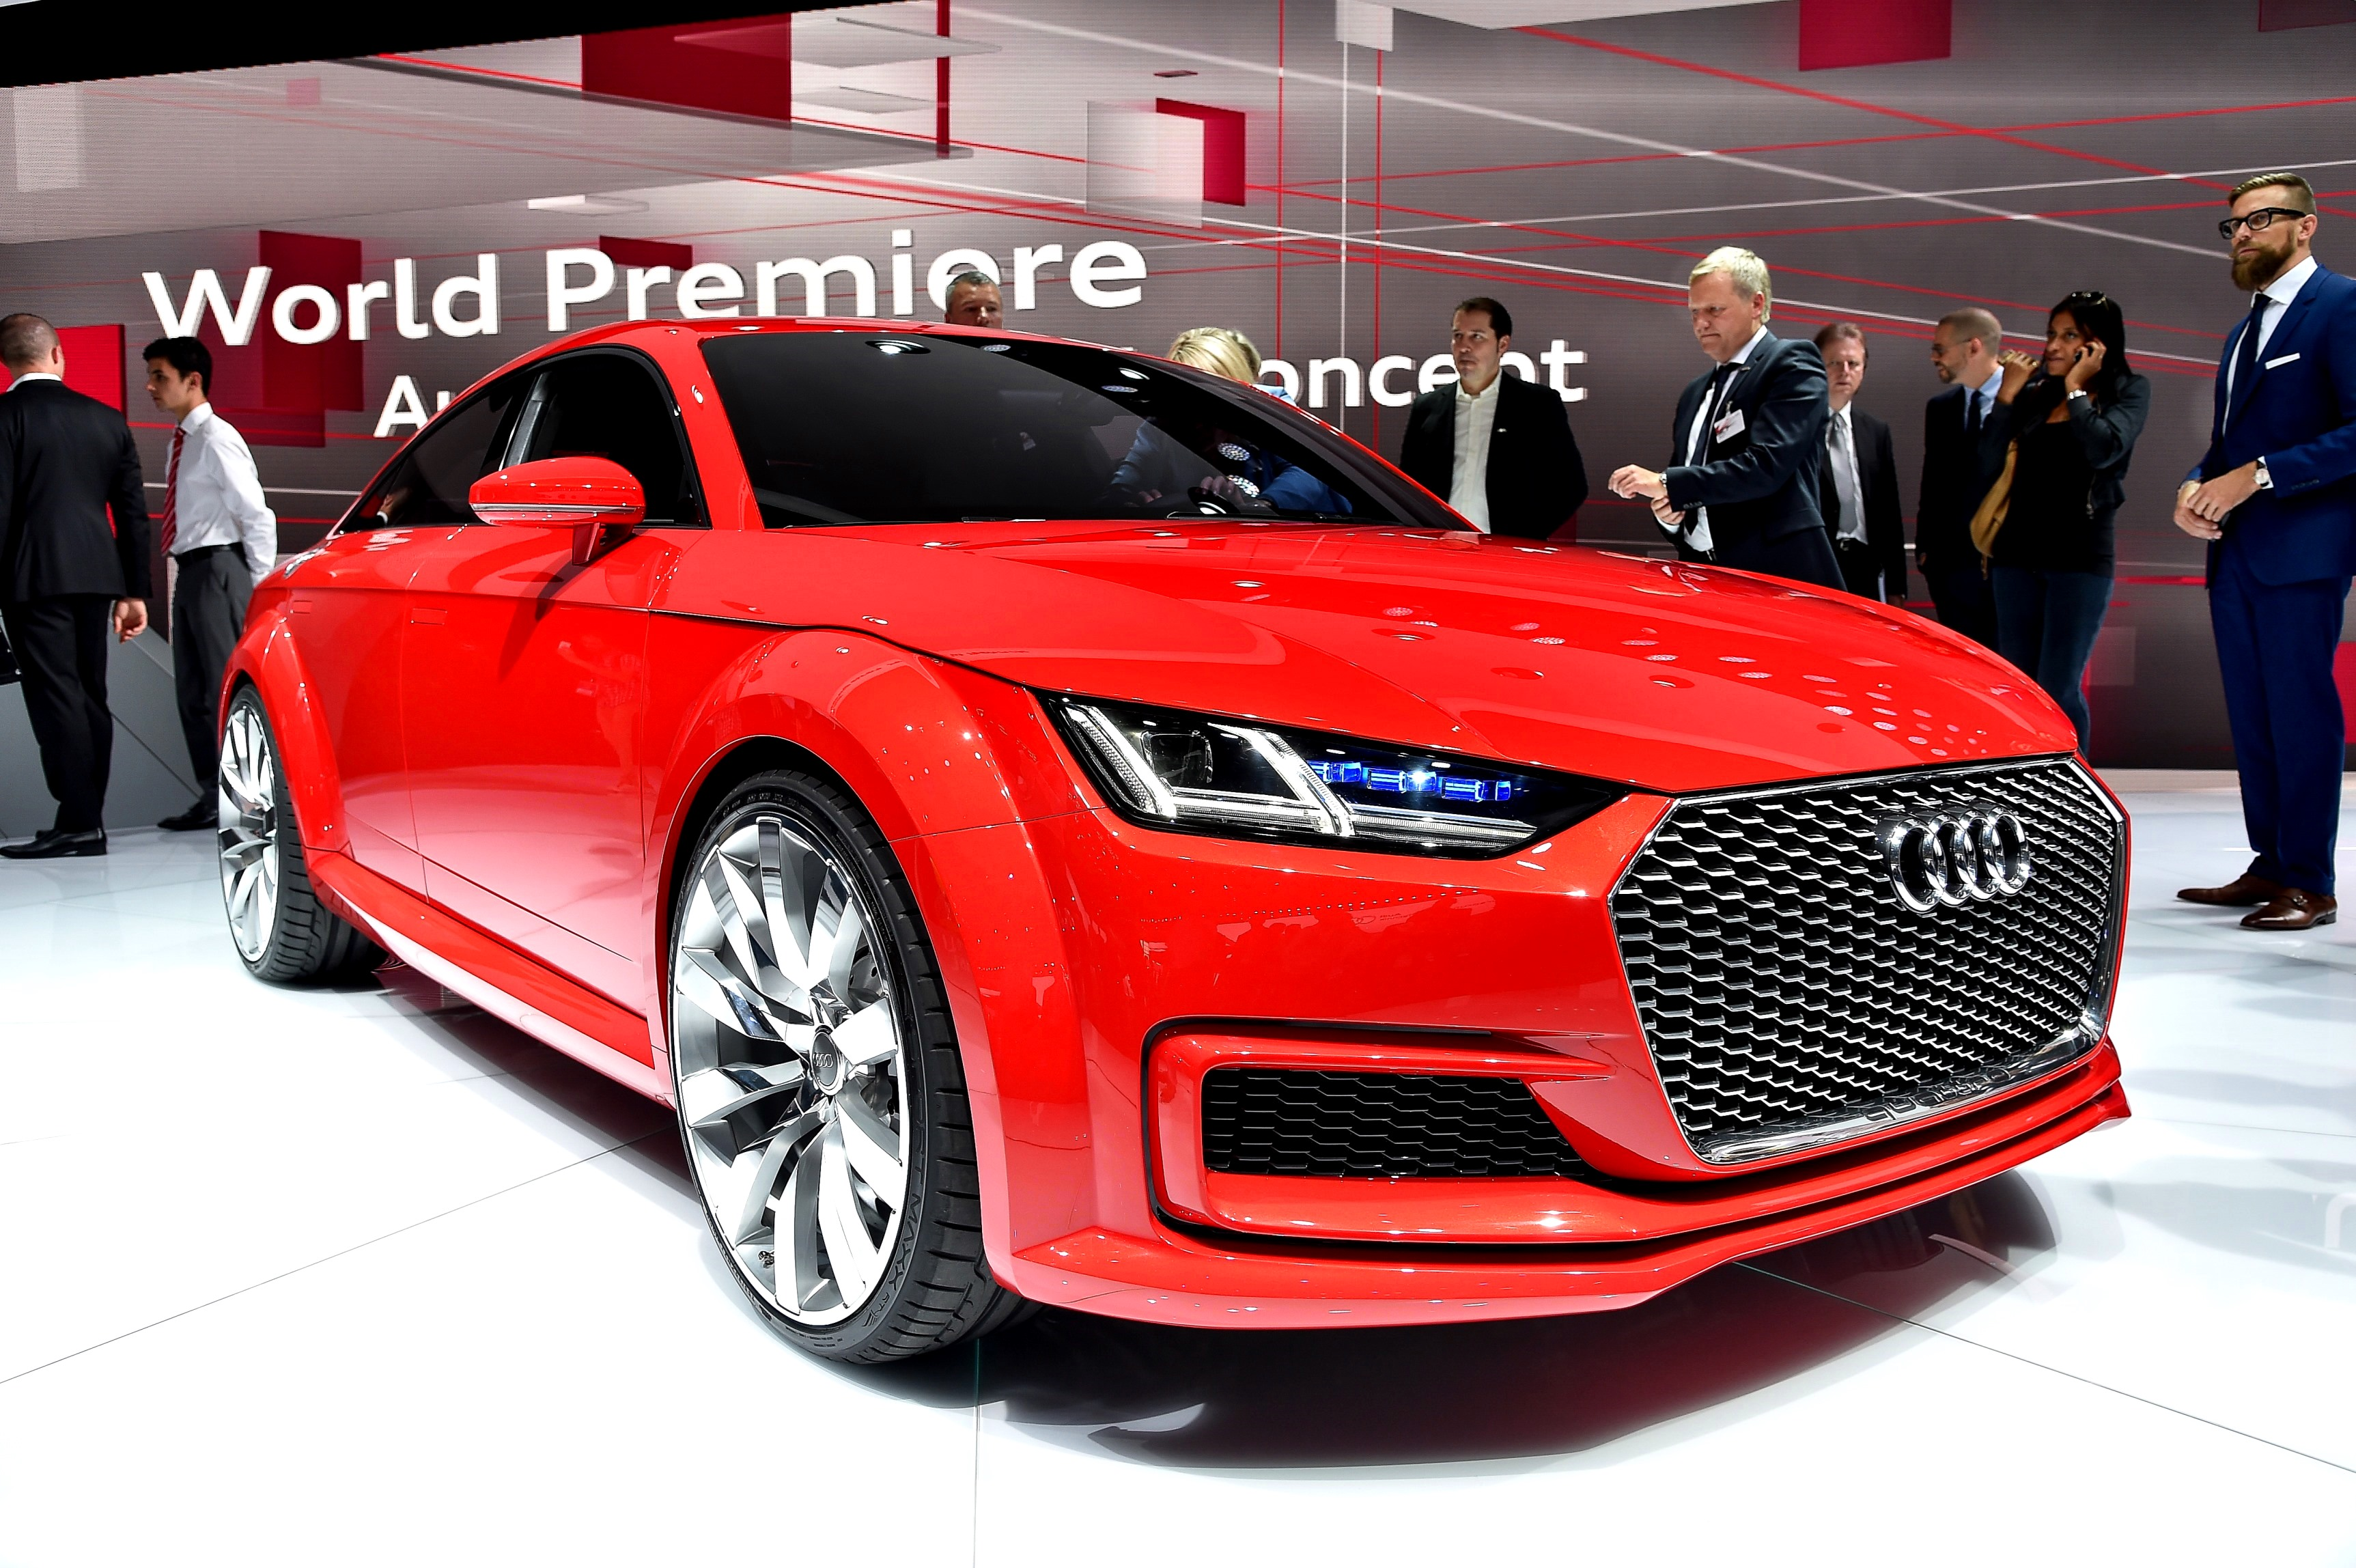 2014 audi tt sportback concept is a stylish escape from current audi styling funk. Black Bedroom Furniture Sets. Home Design Ideas